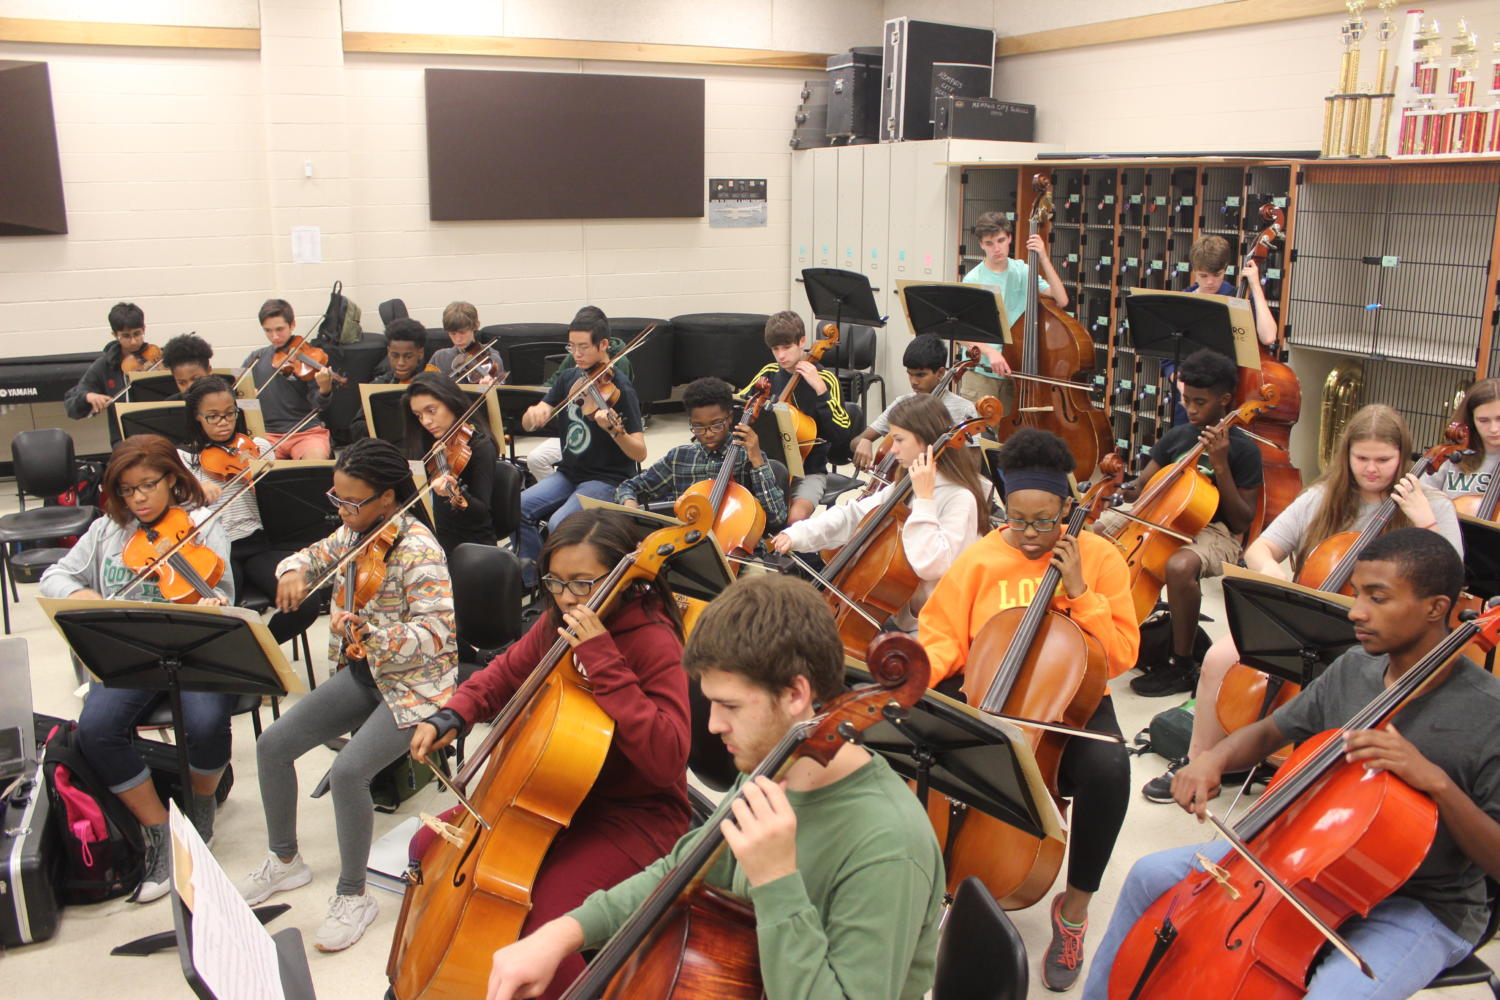 The White Station orchestra rehearsing concert pieces